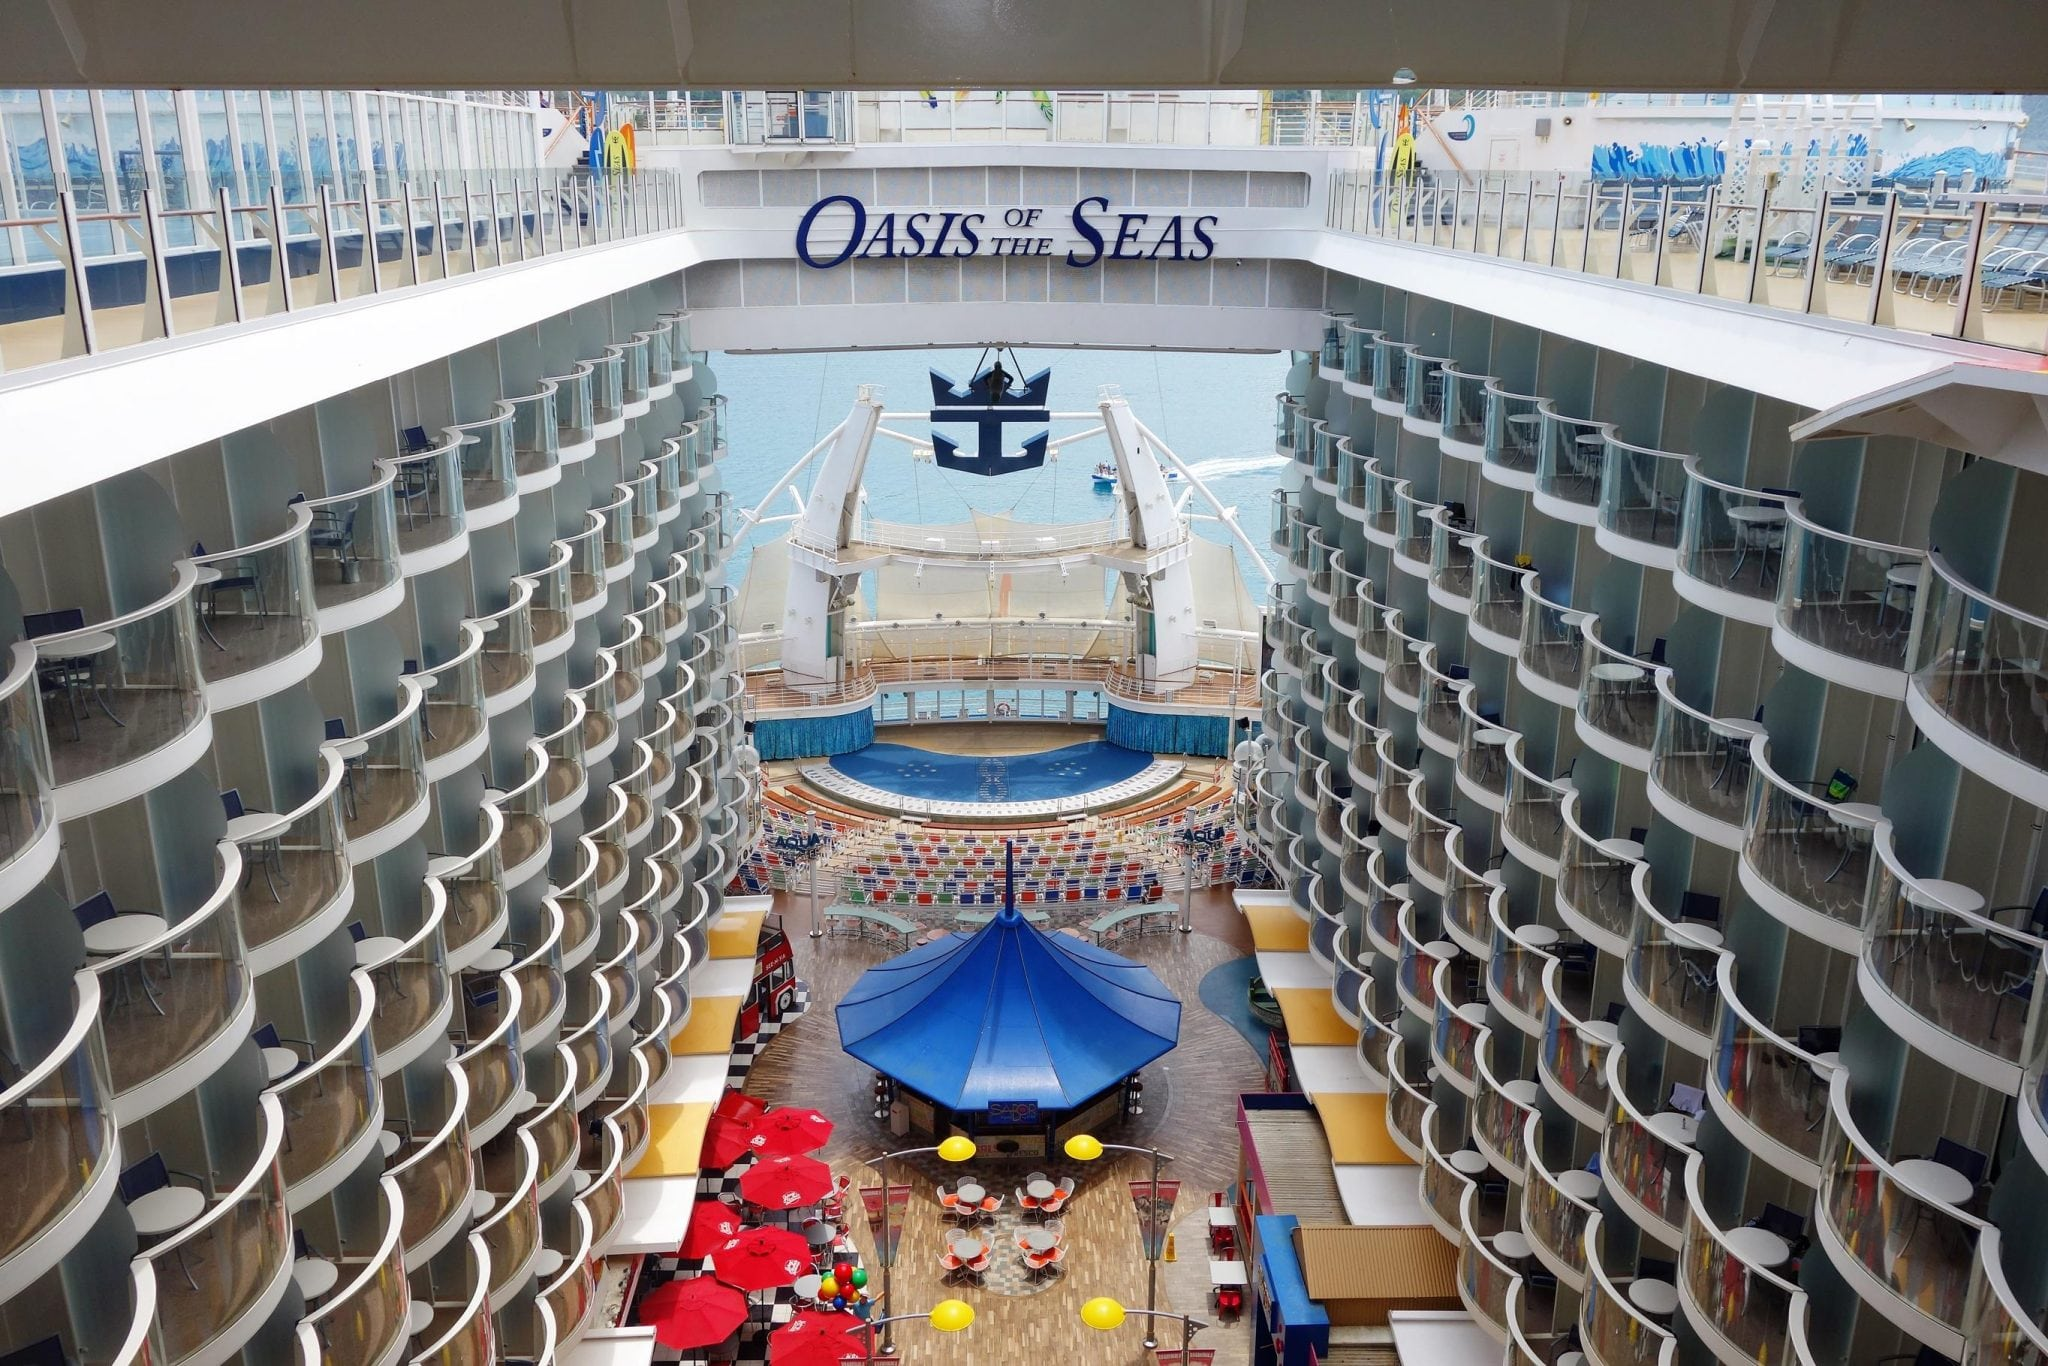 Oasis of the Seas Compass Western Caribbean Cruise